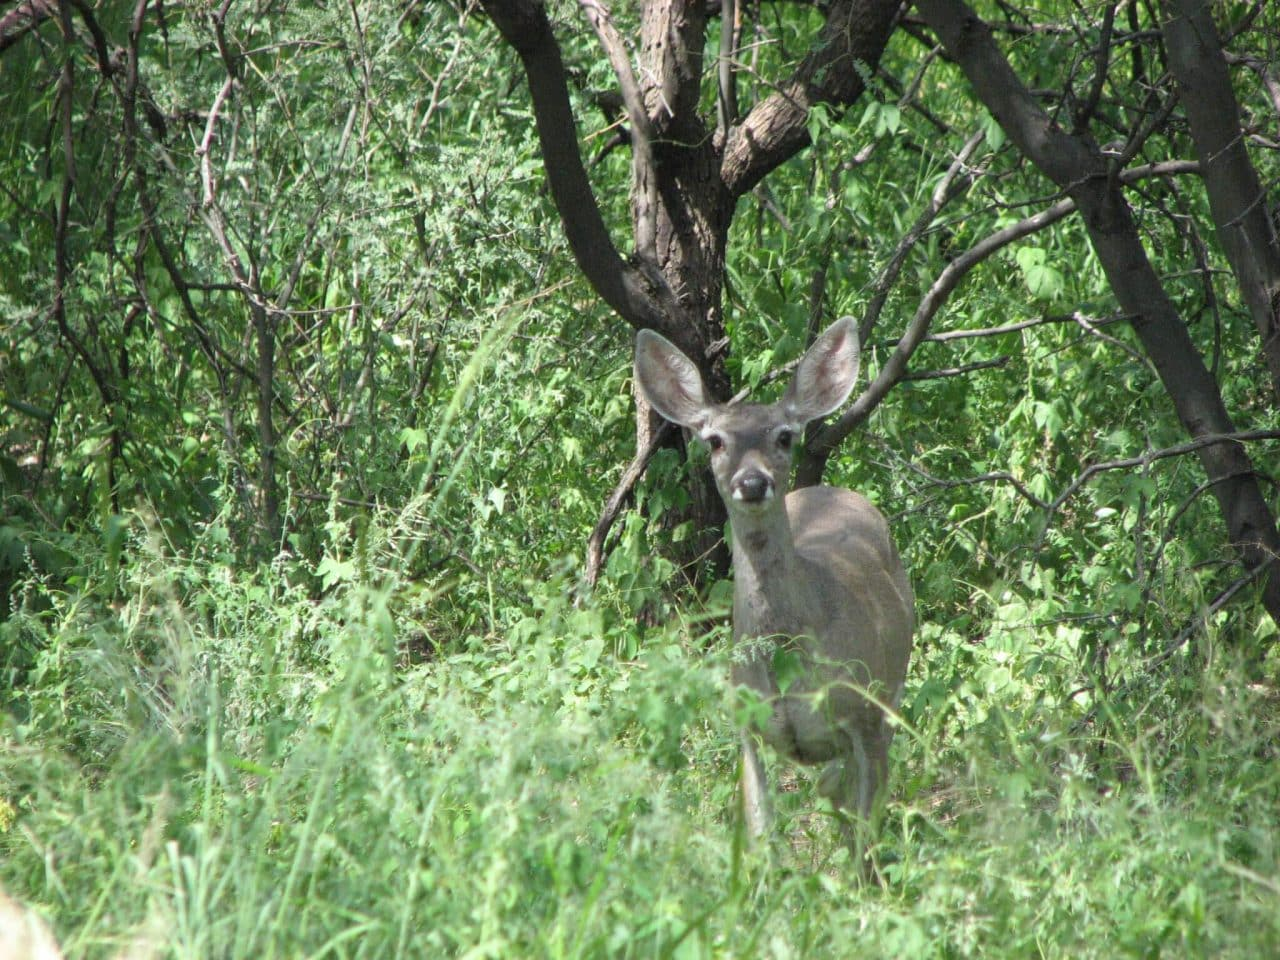 Adult deer looking straight at the camera surrounded by grass and trees